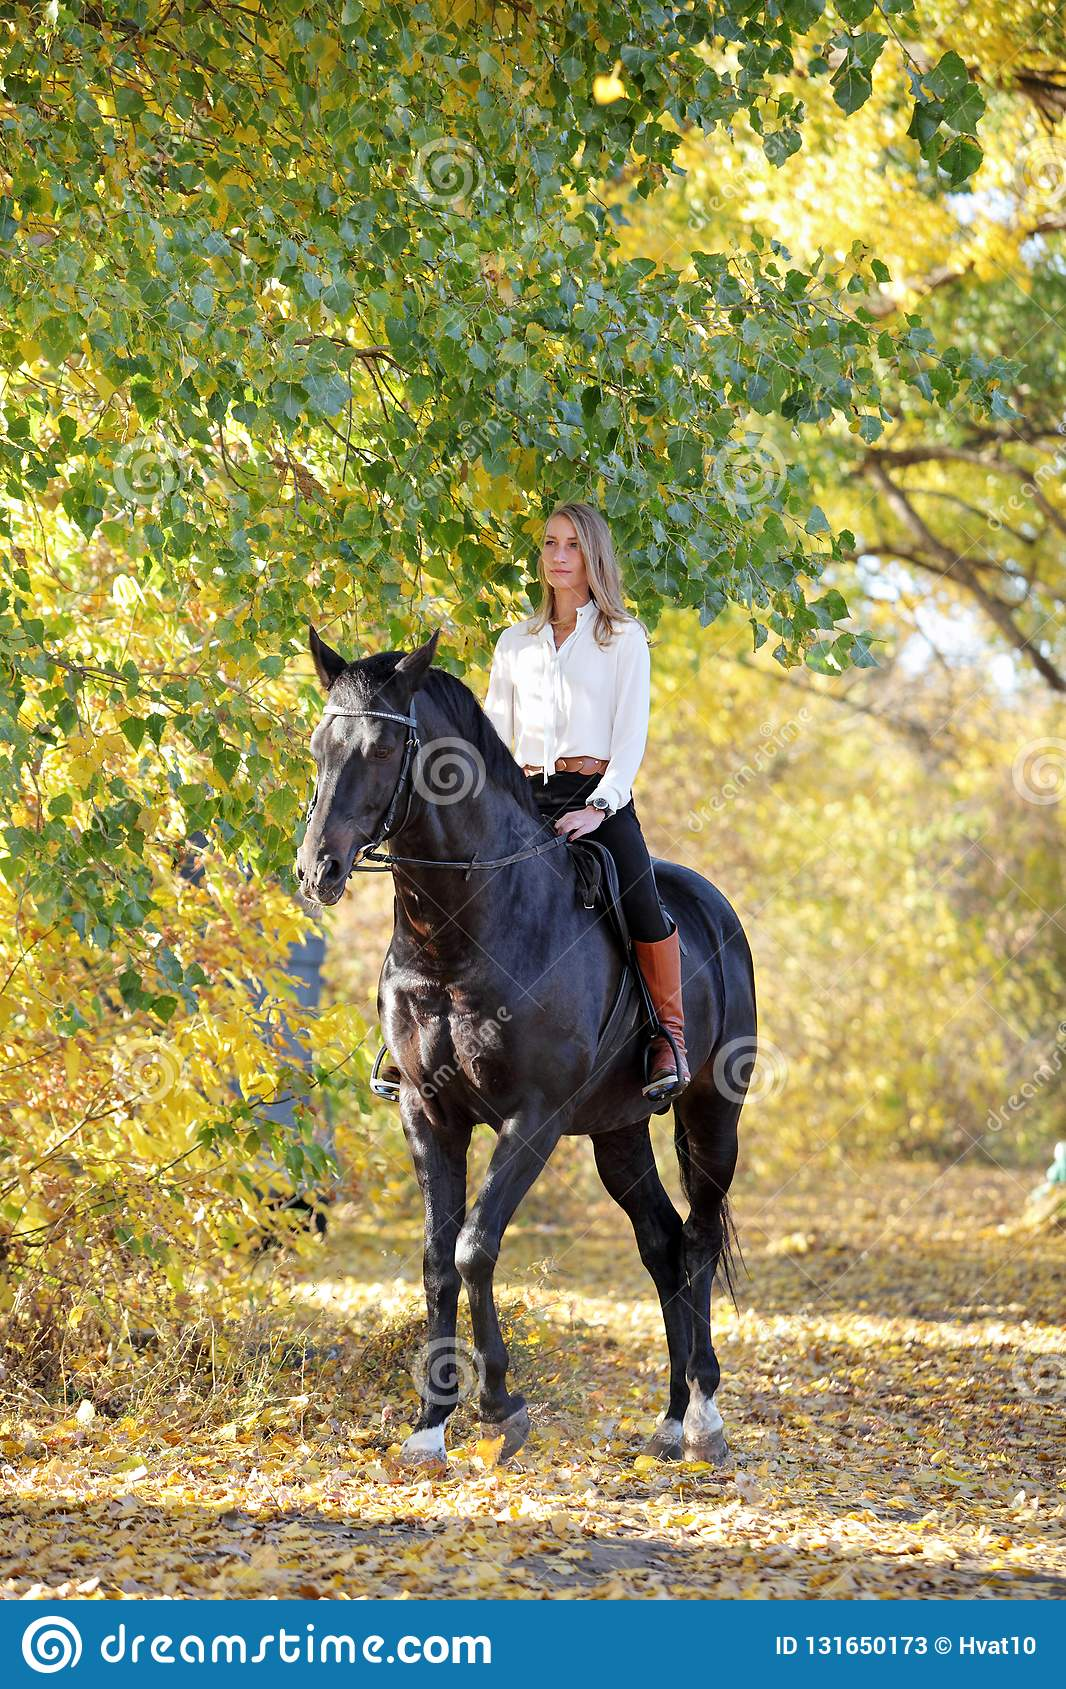 Horseback Woman Riding A Horse In Autumn Yellow Woods Stock Image Image Of Background Bridle 131650173